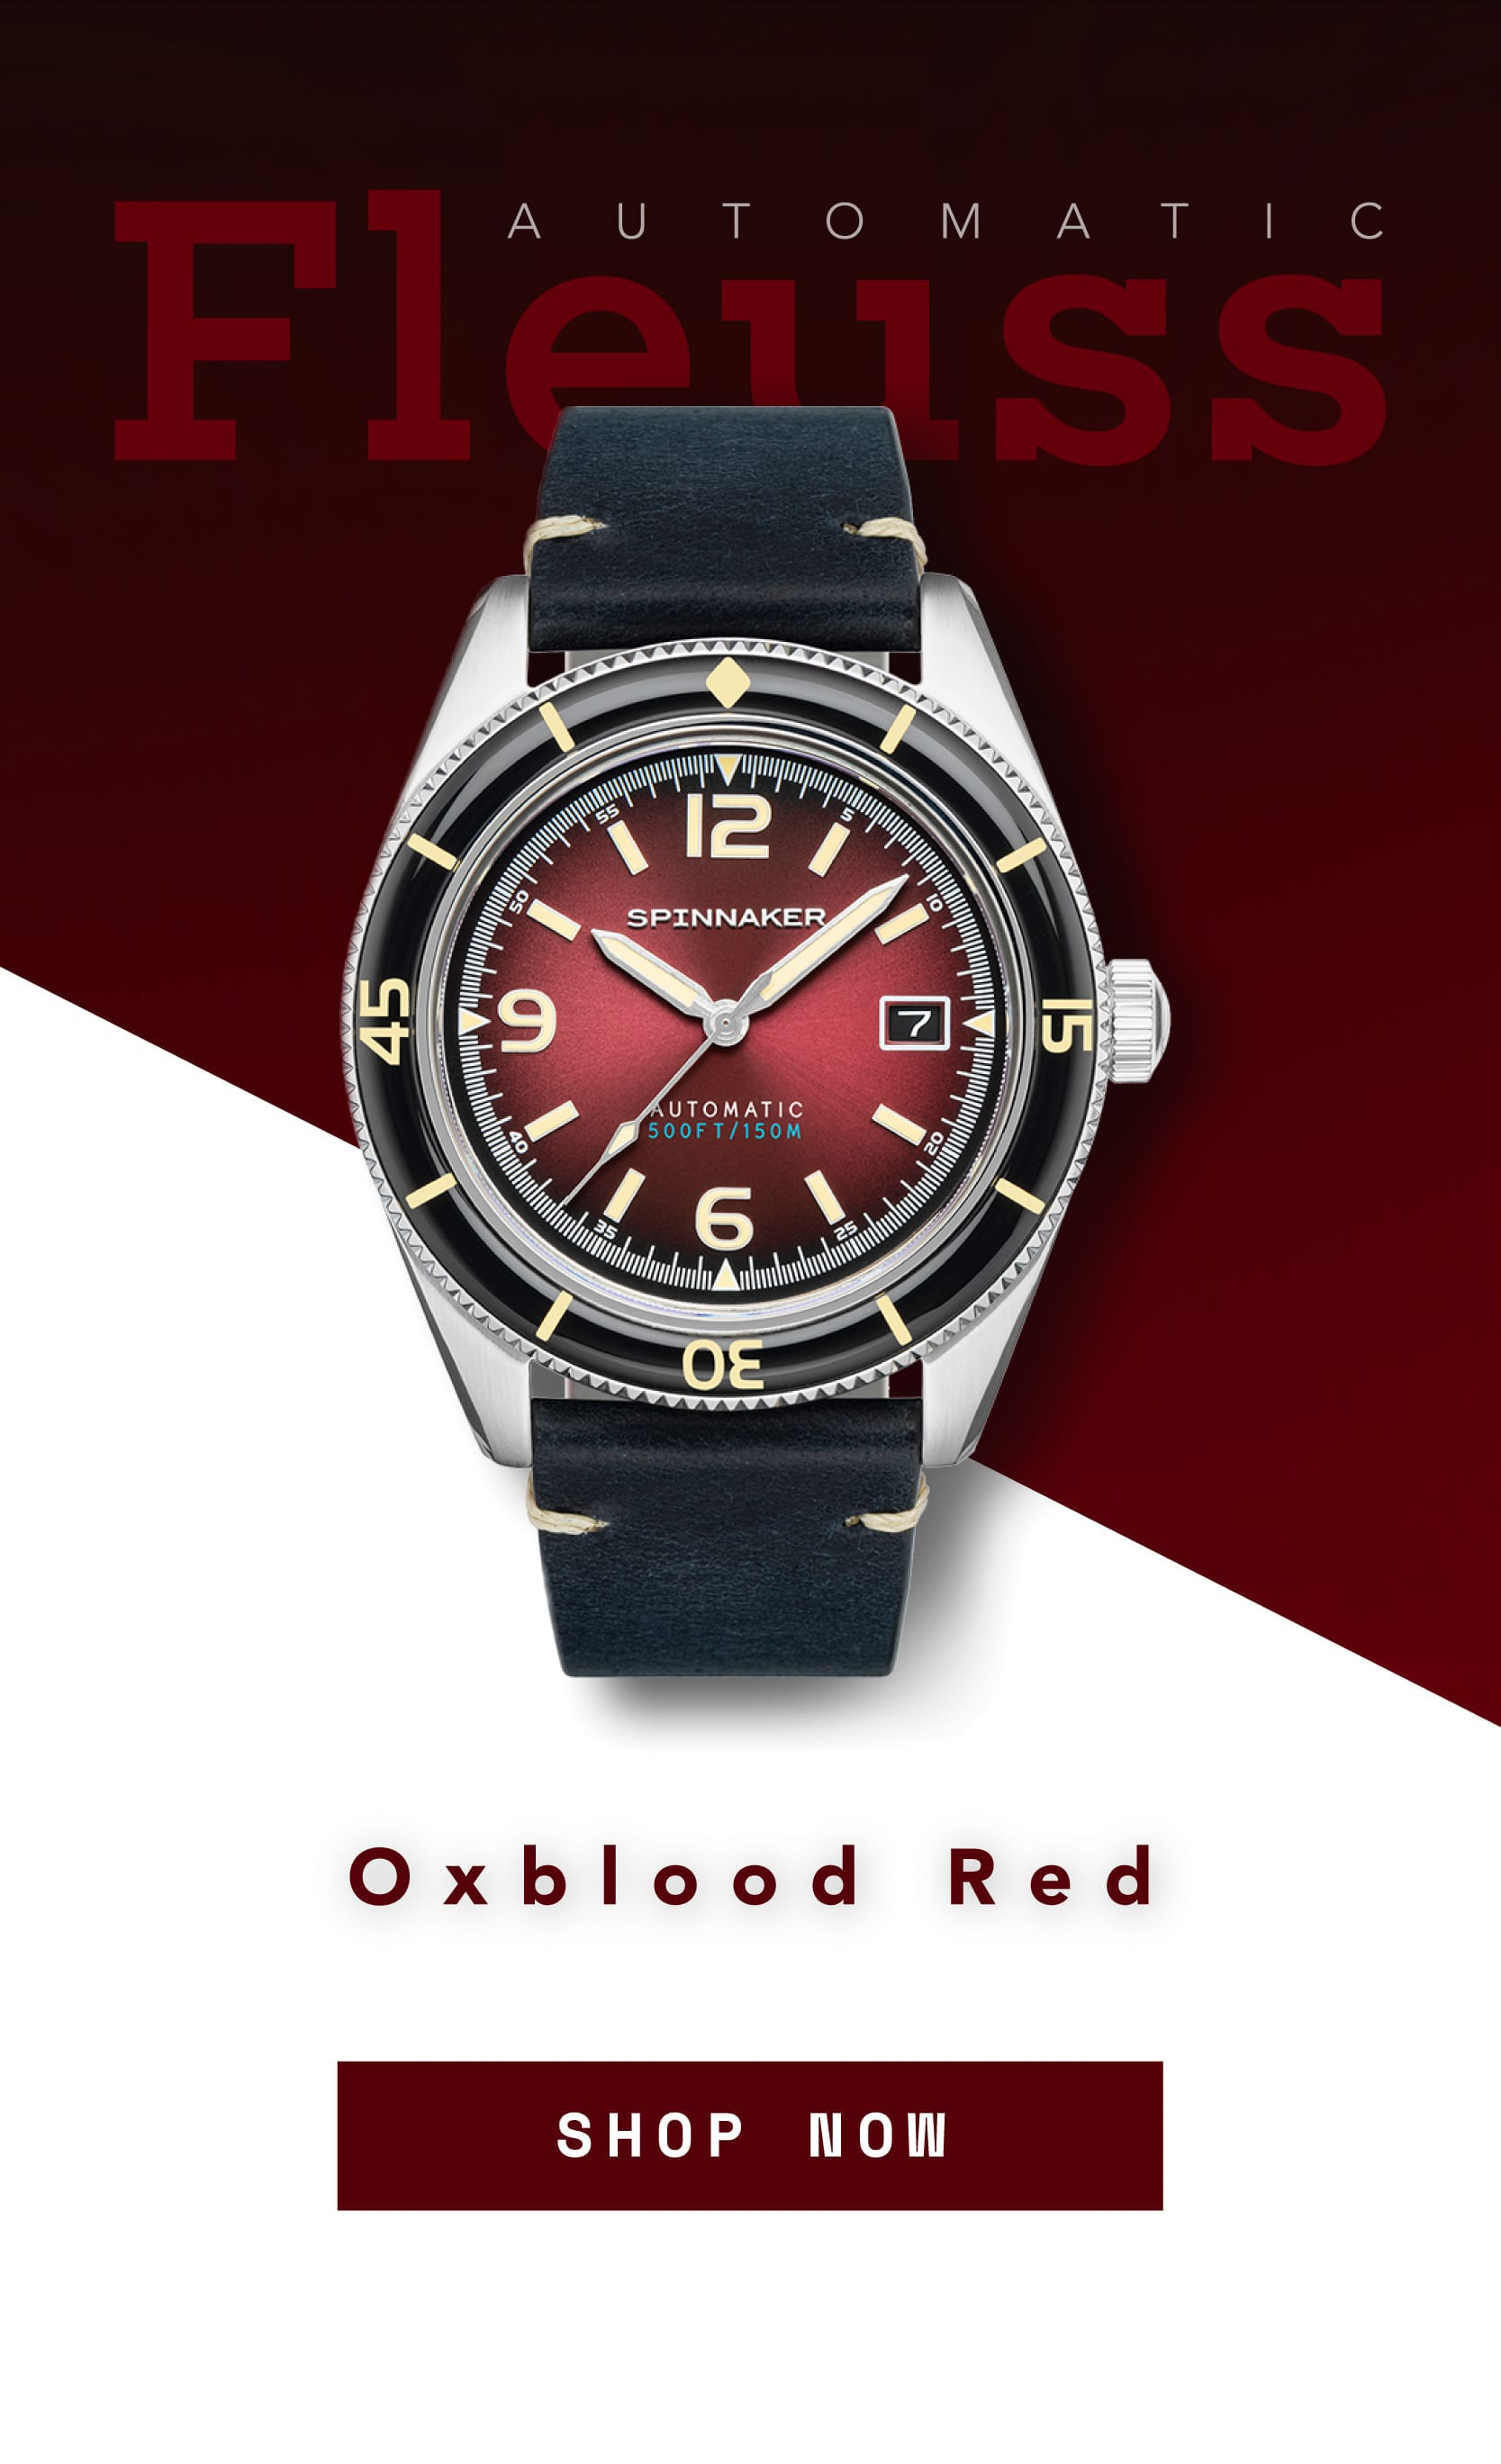 The Fleuss Oxblood Red is here...